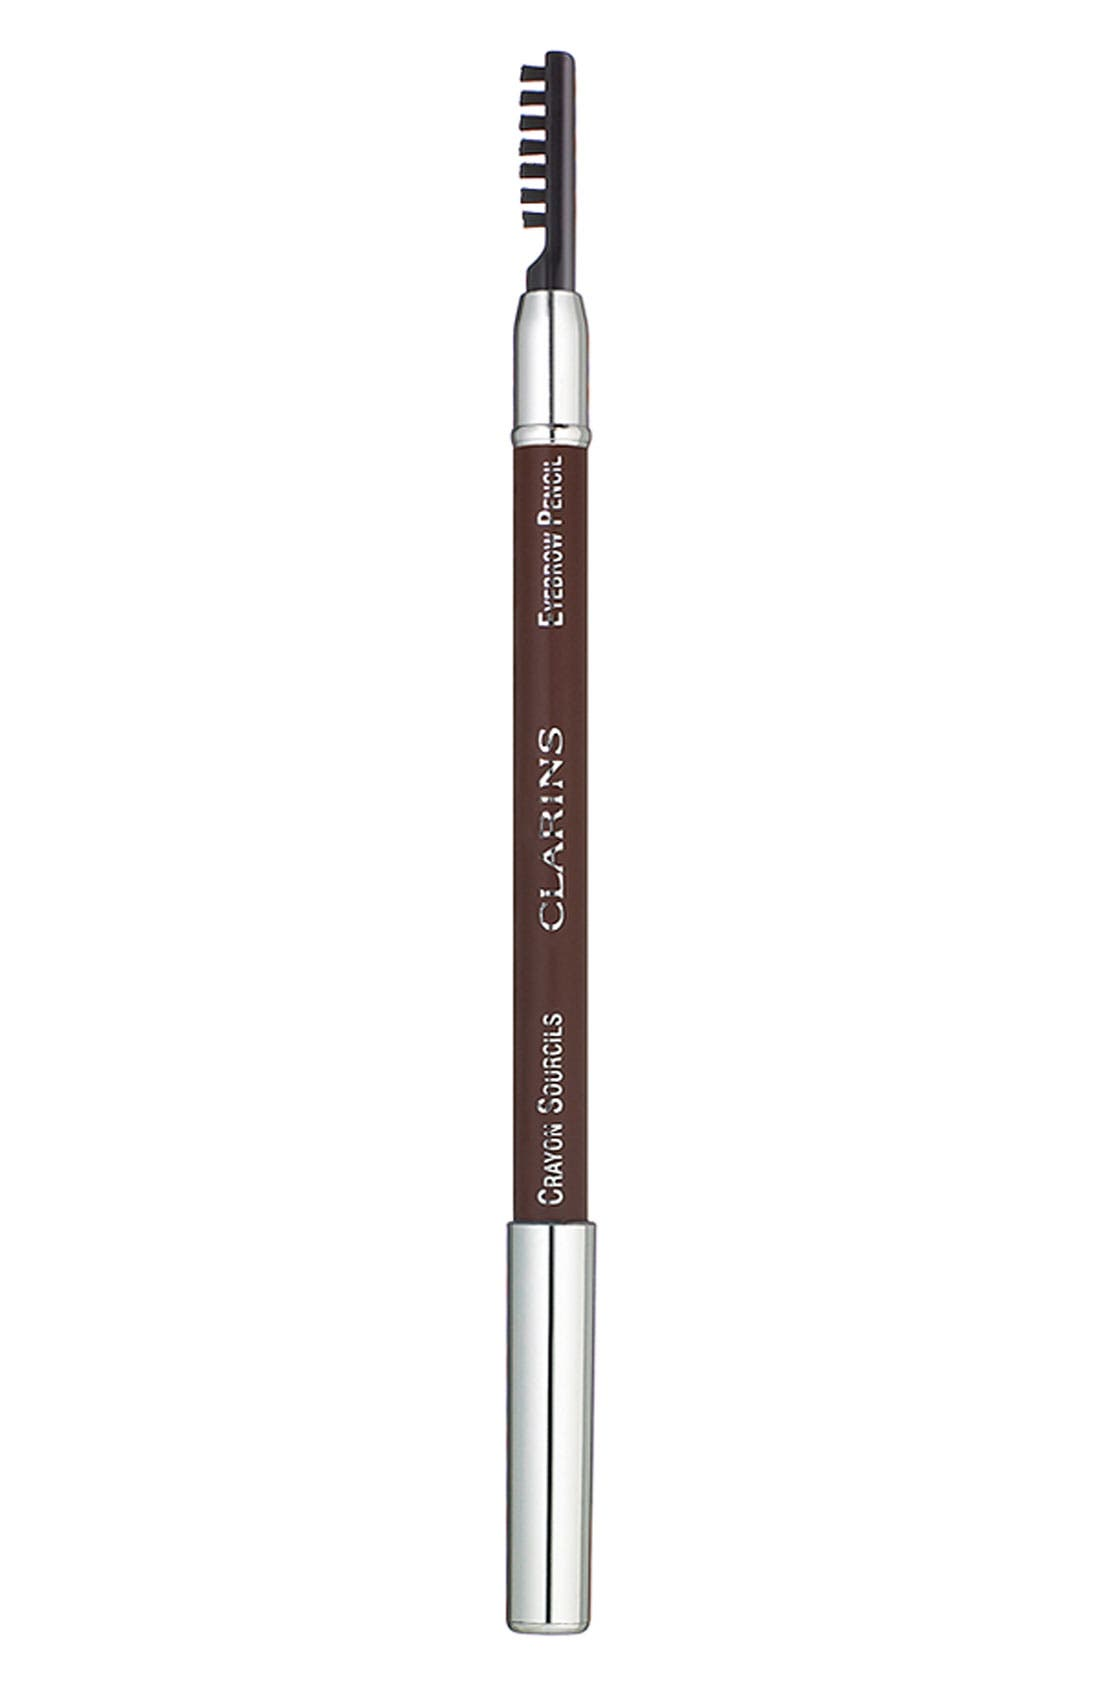 Eyebrow Pencil,                             Main thumbnail 1, color,                             001